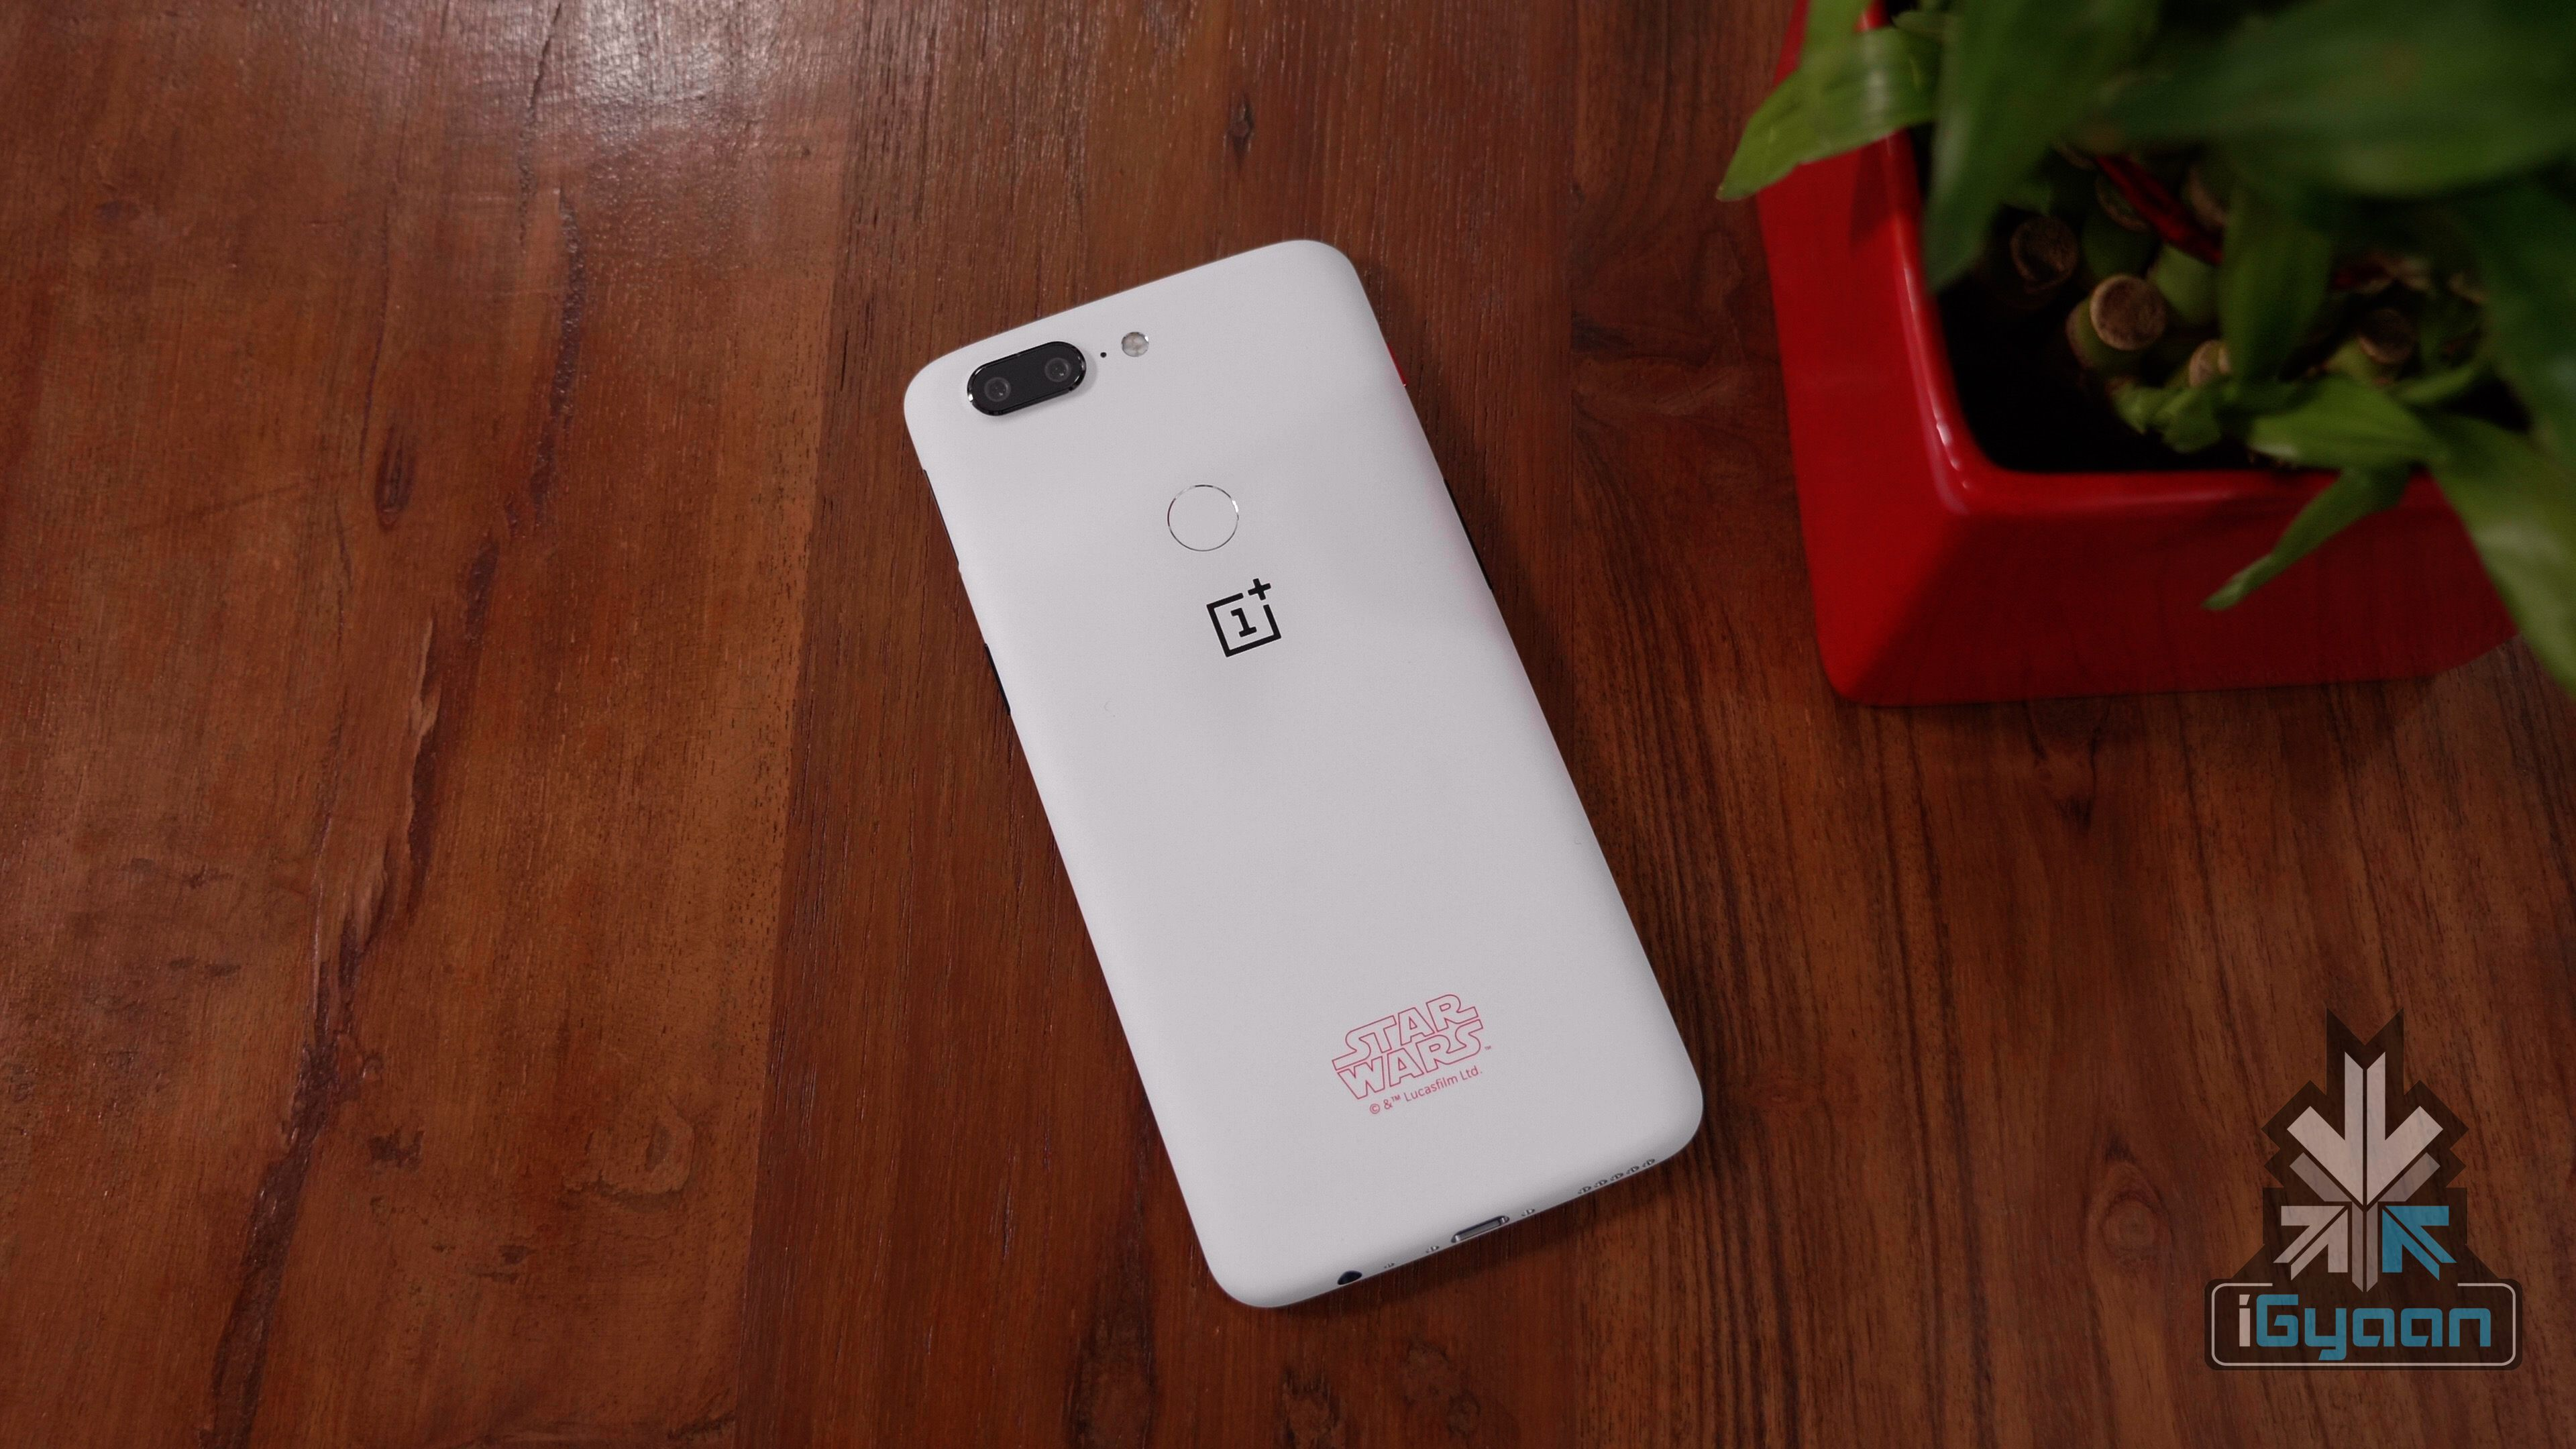 OnePlus teases the OnePlus 6 will feature waterproofing